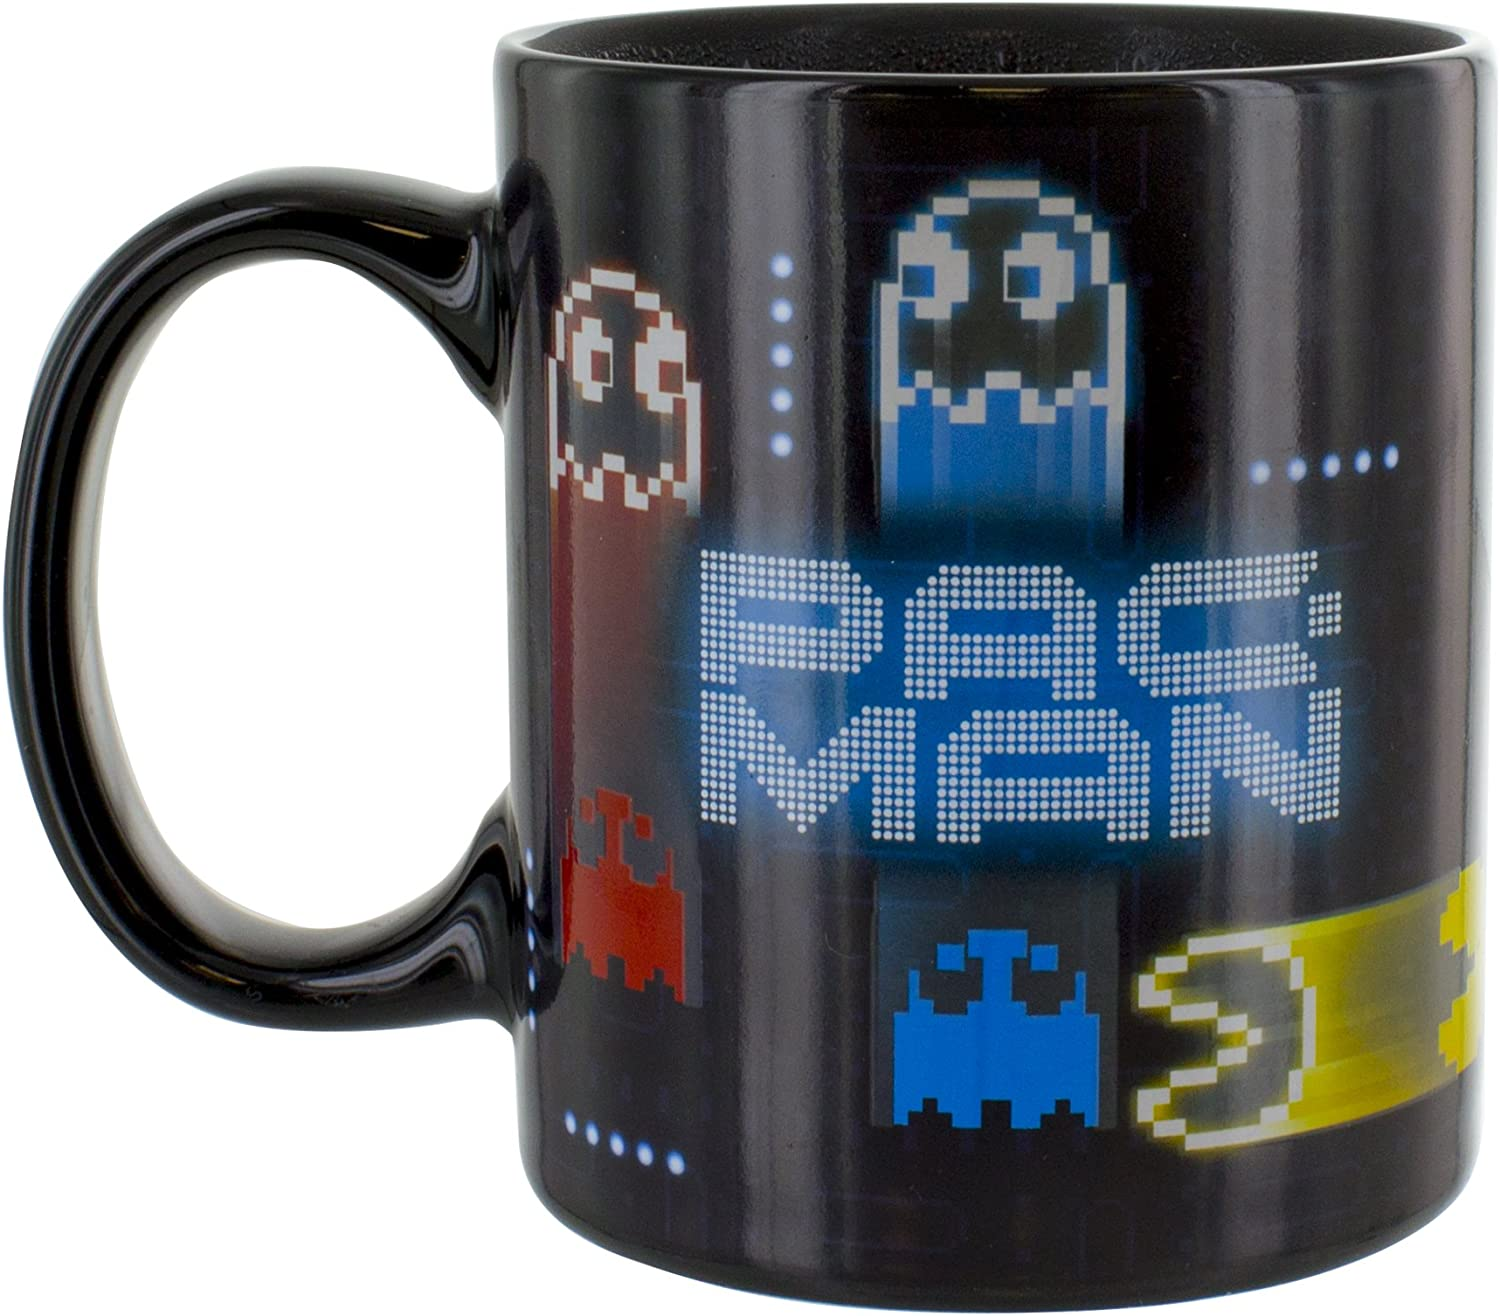 Pac-Man Neon Heat Change Mug. Official Paladone product